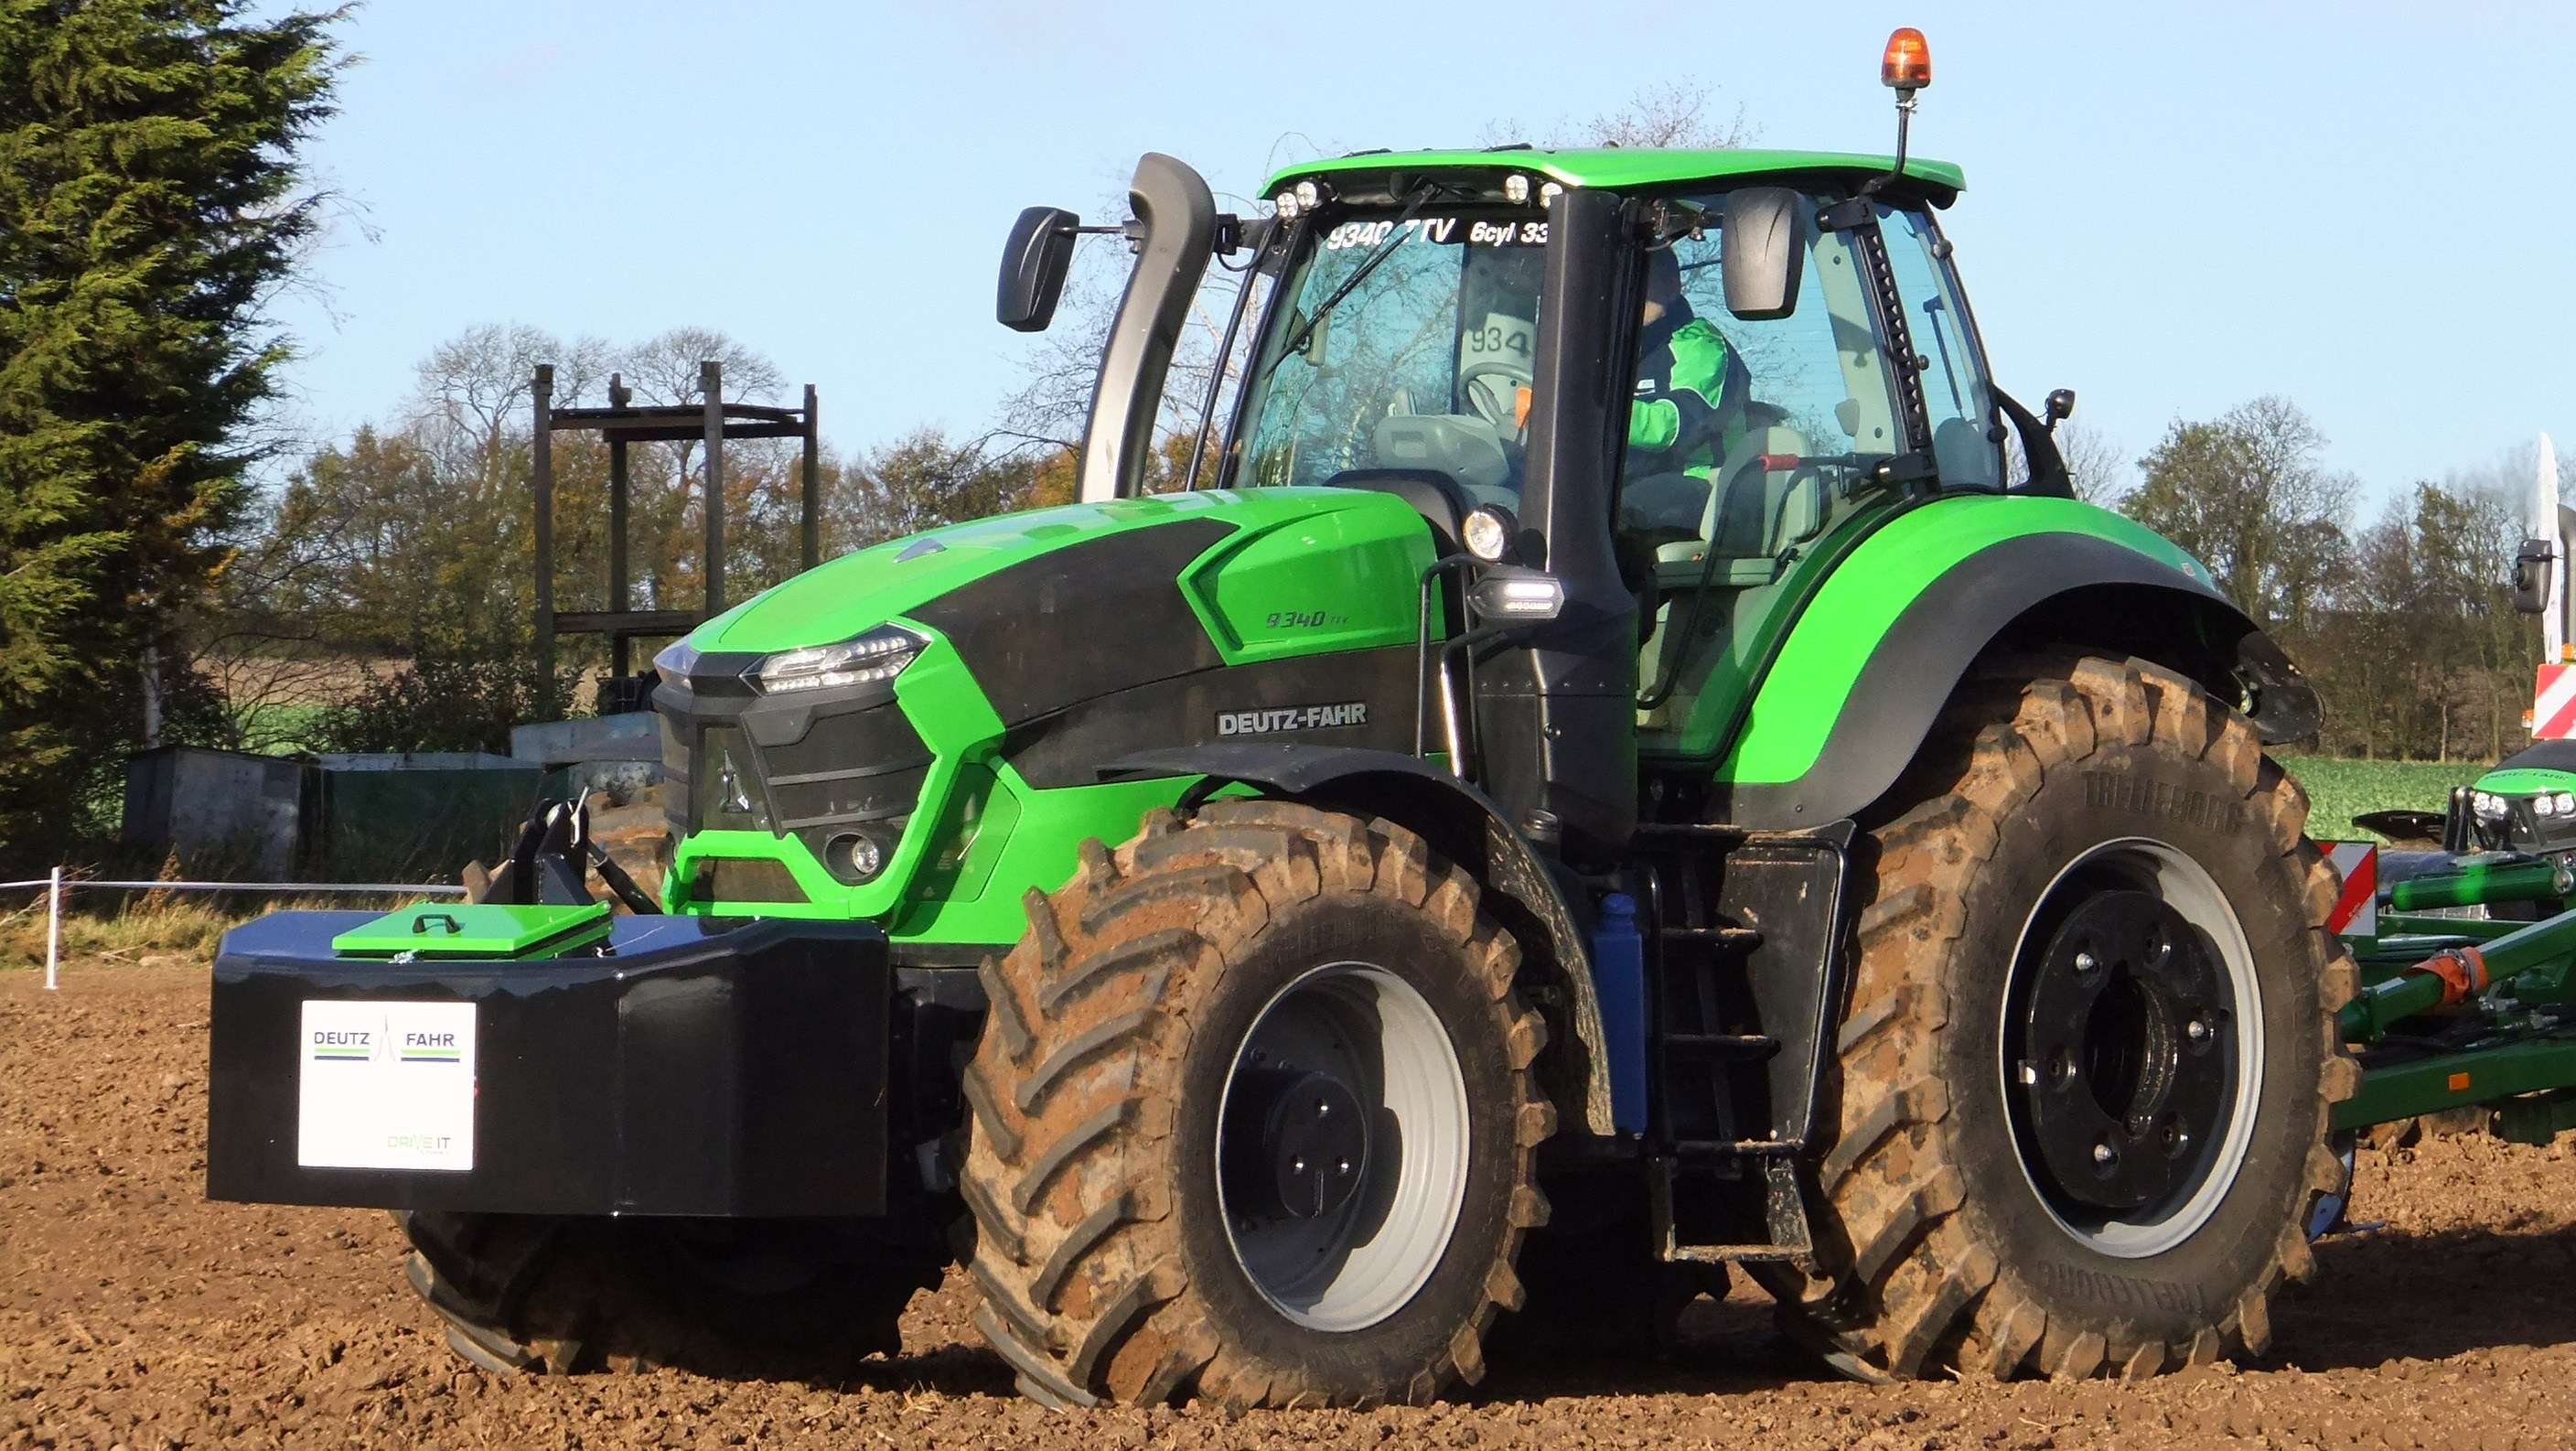 First drive: Is the new Deutz-Fahr 9 Series tractor as good as it looks?